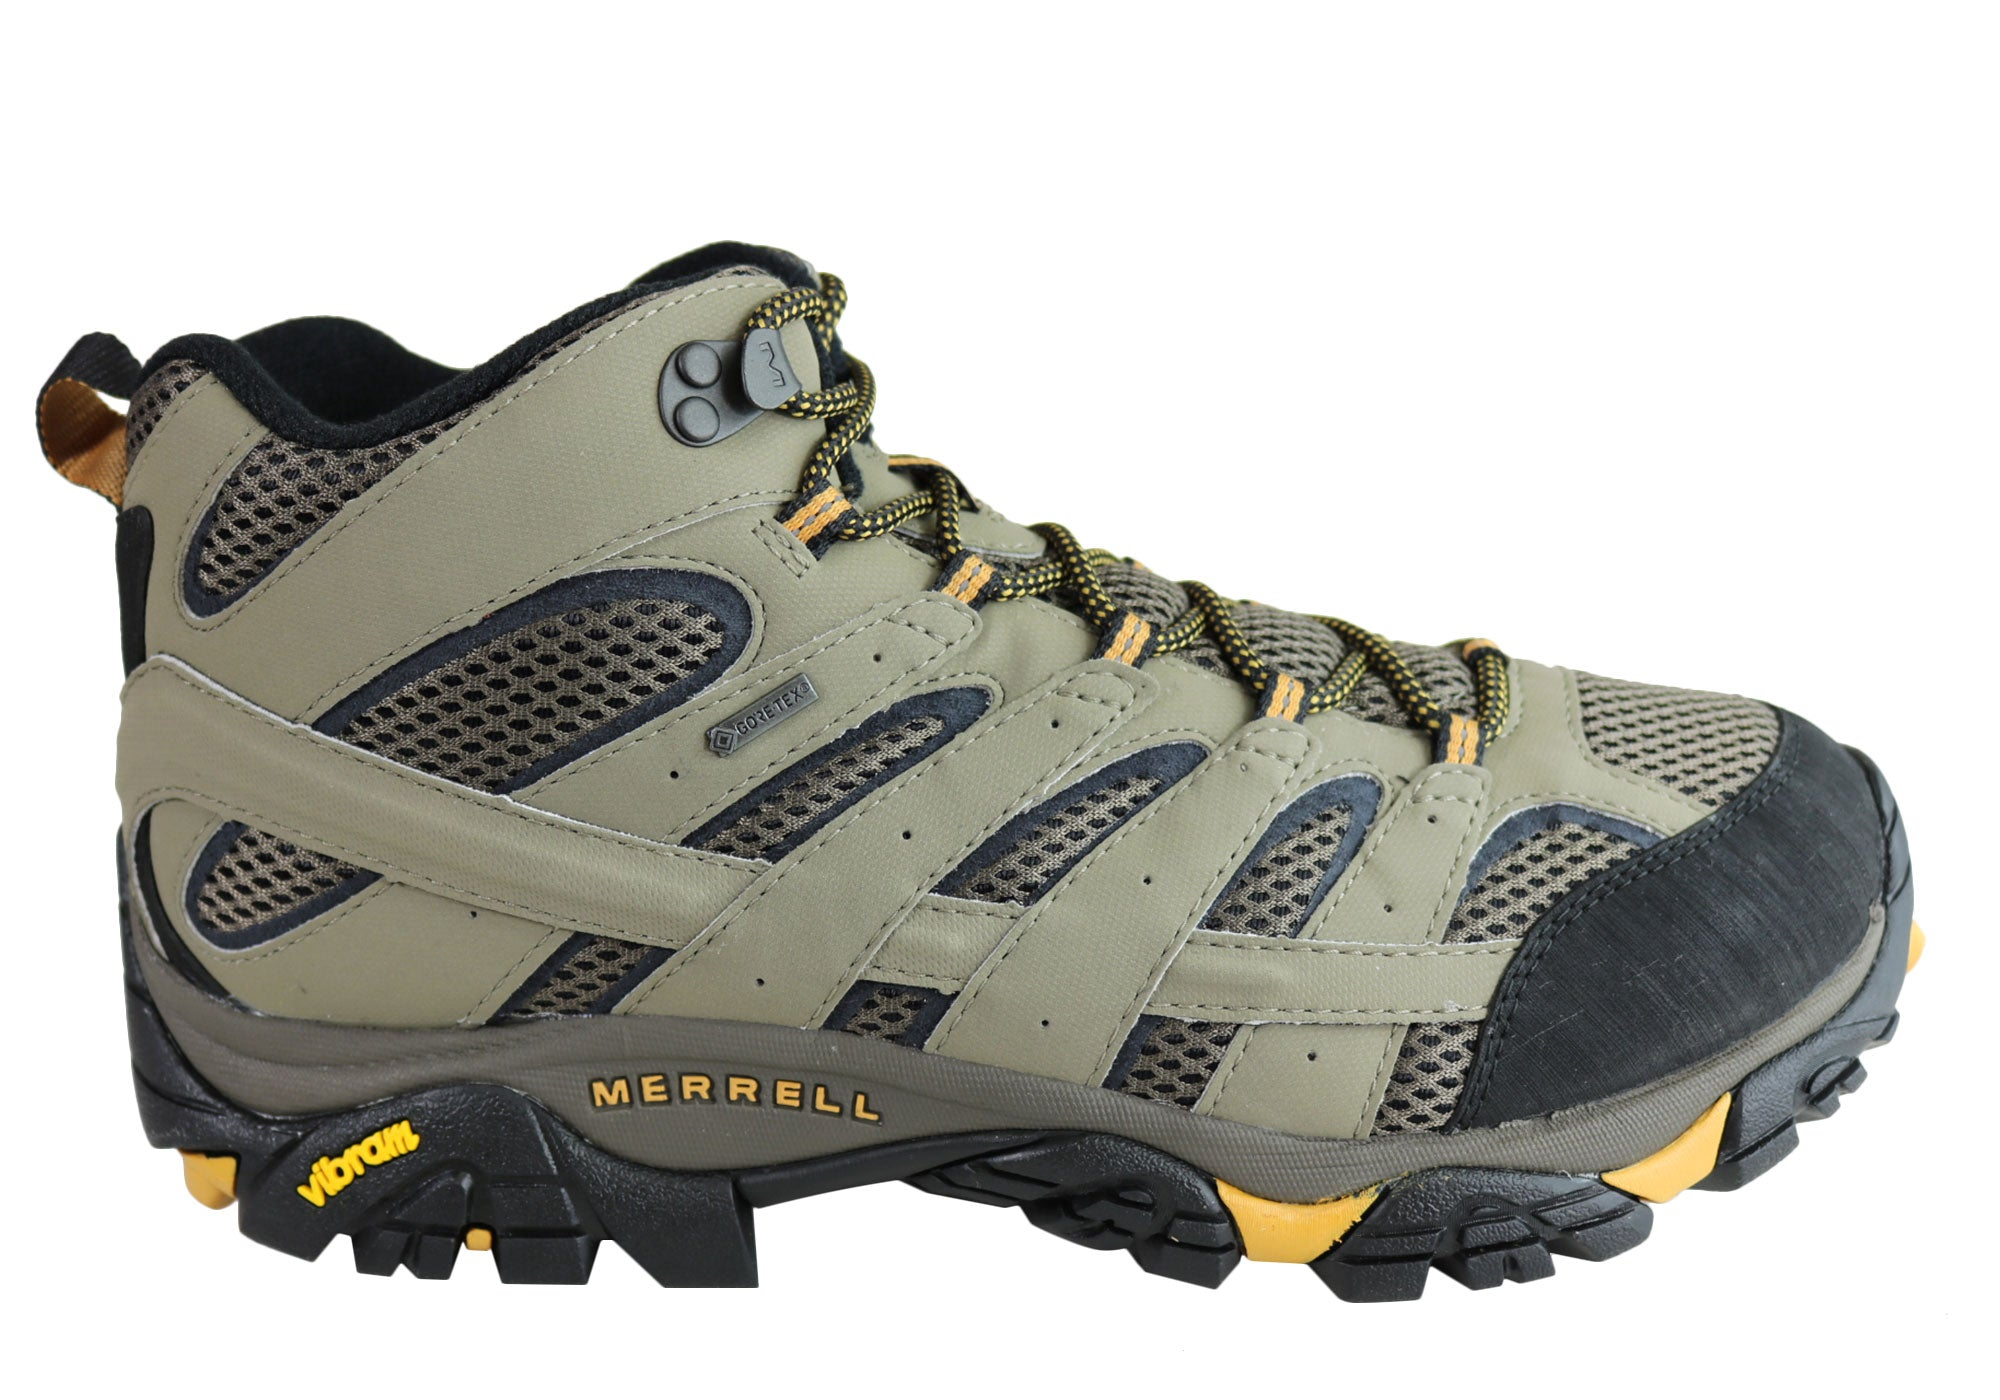 4a418b5a47e Merrell Mens Moab 2 Mid Gore Tex Waterproof Wide Width Hiking Boots